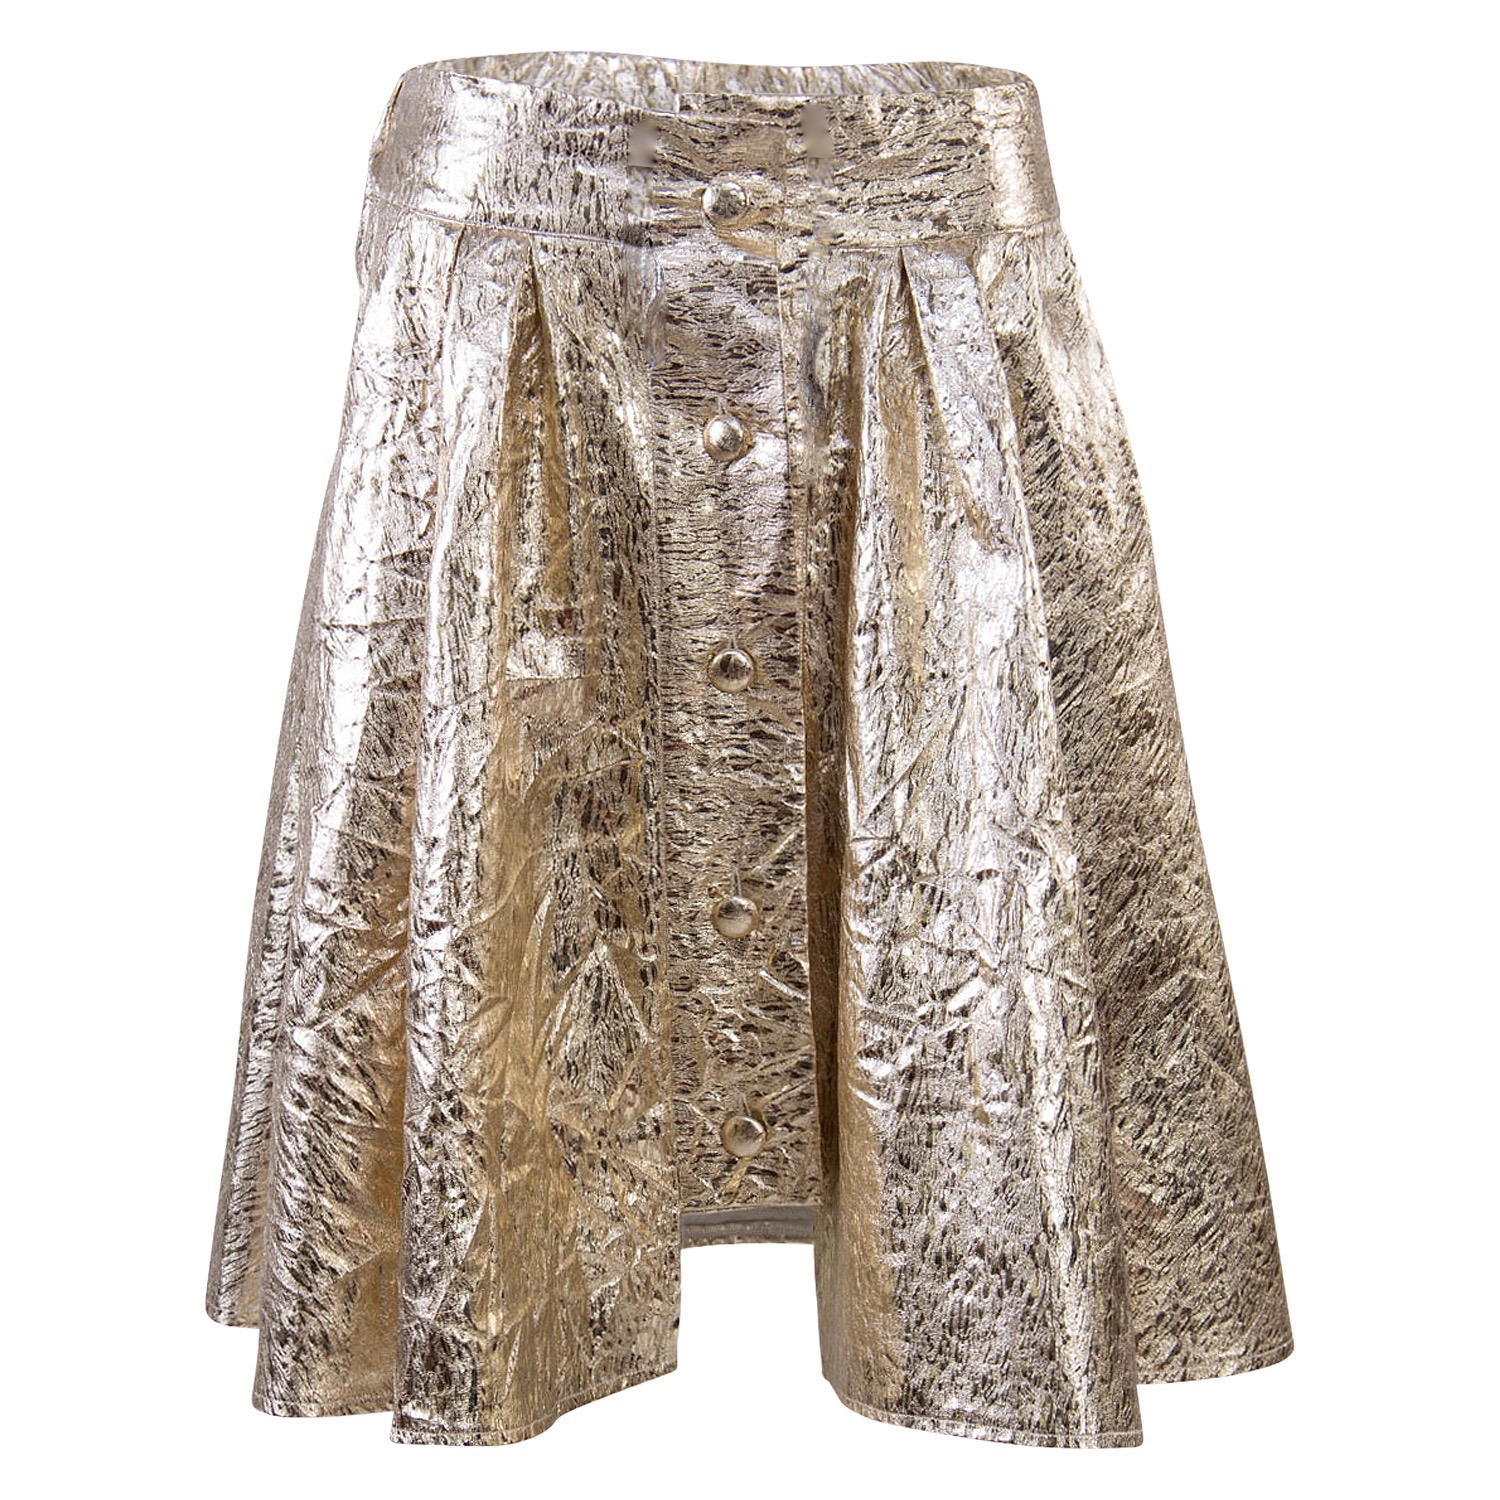 The Gold Crush Riding Skirt